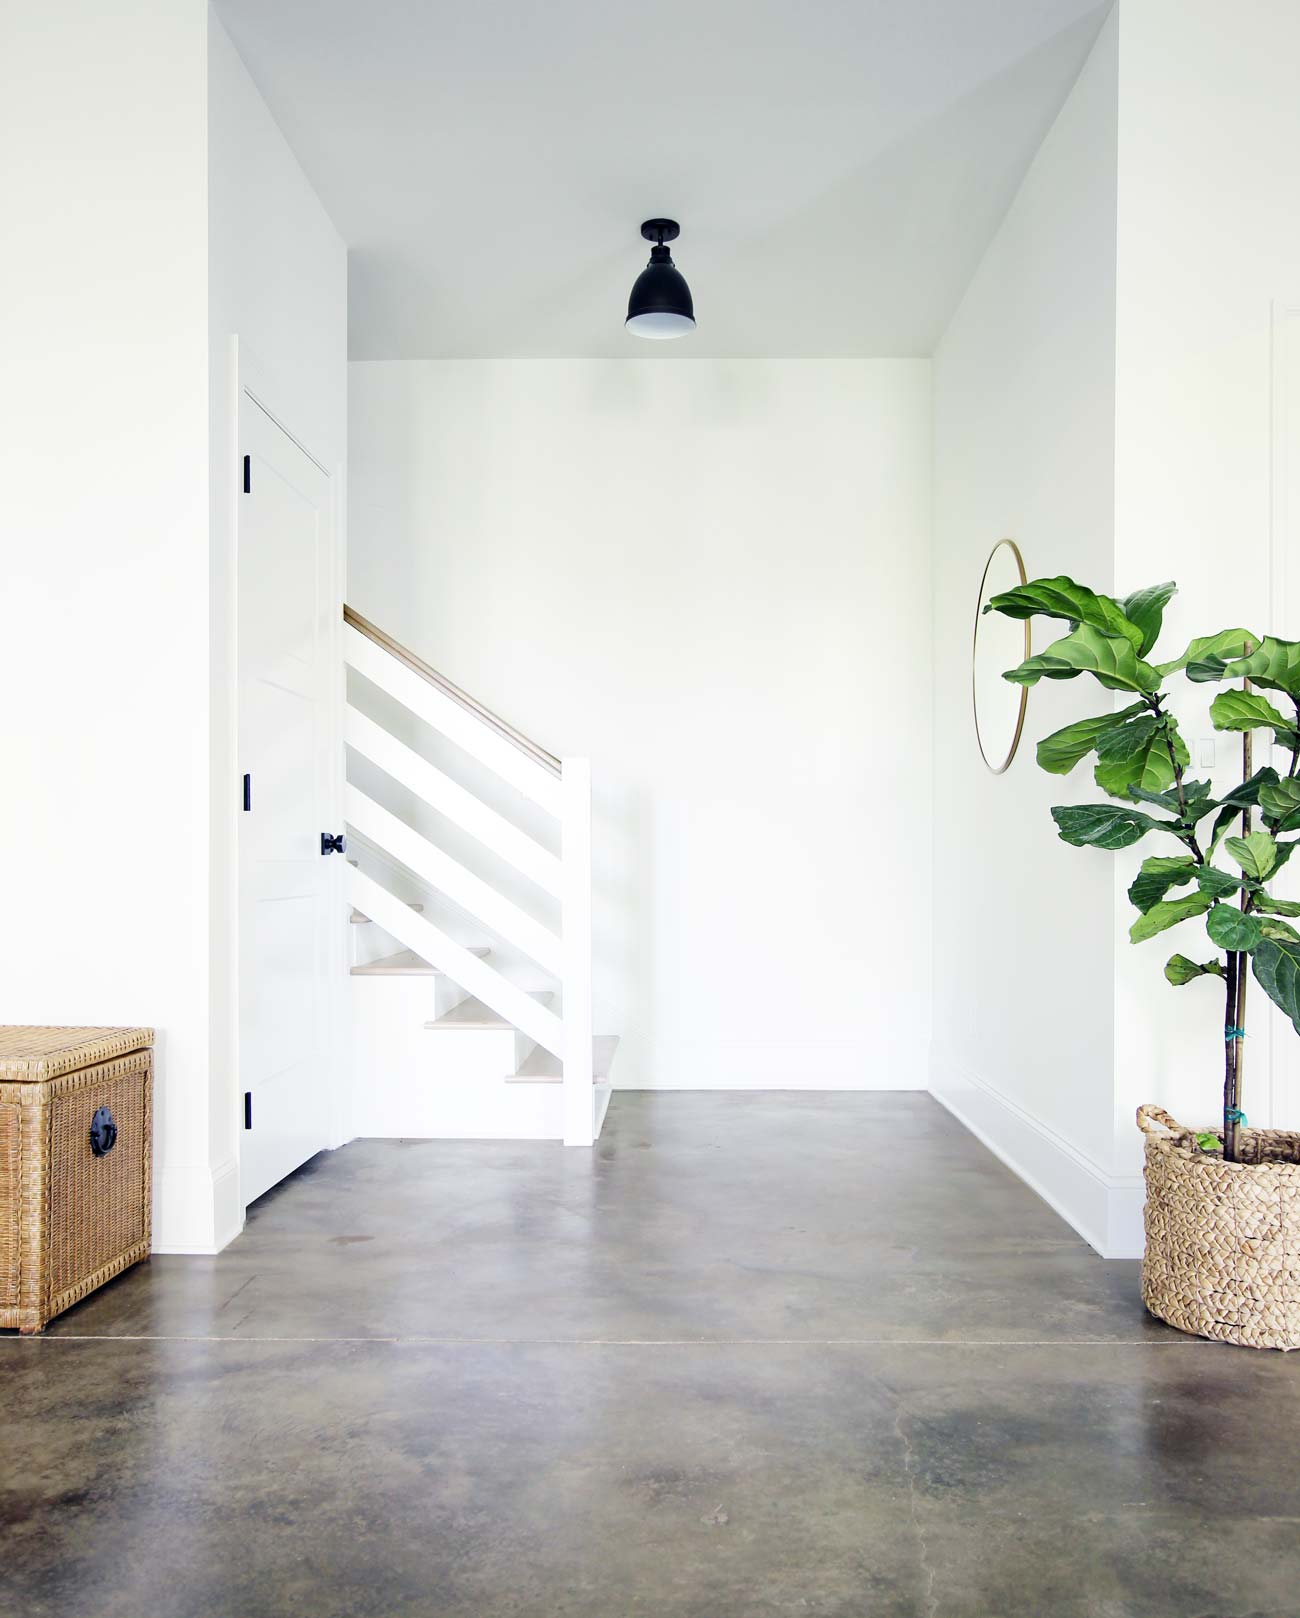 how to acid stain a concrete floor